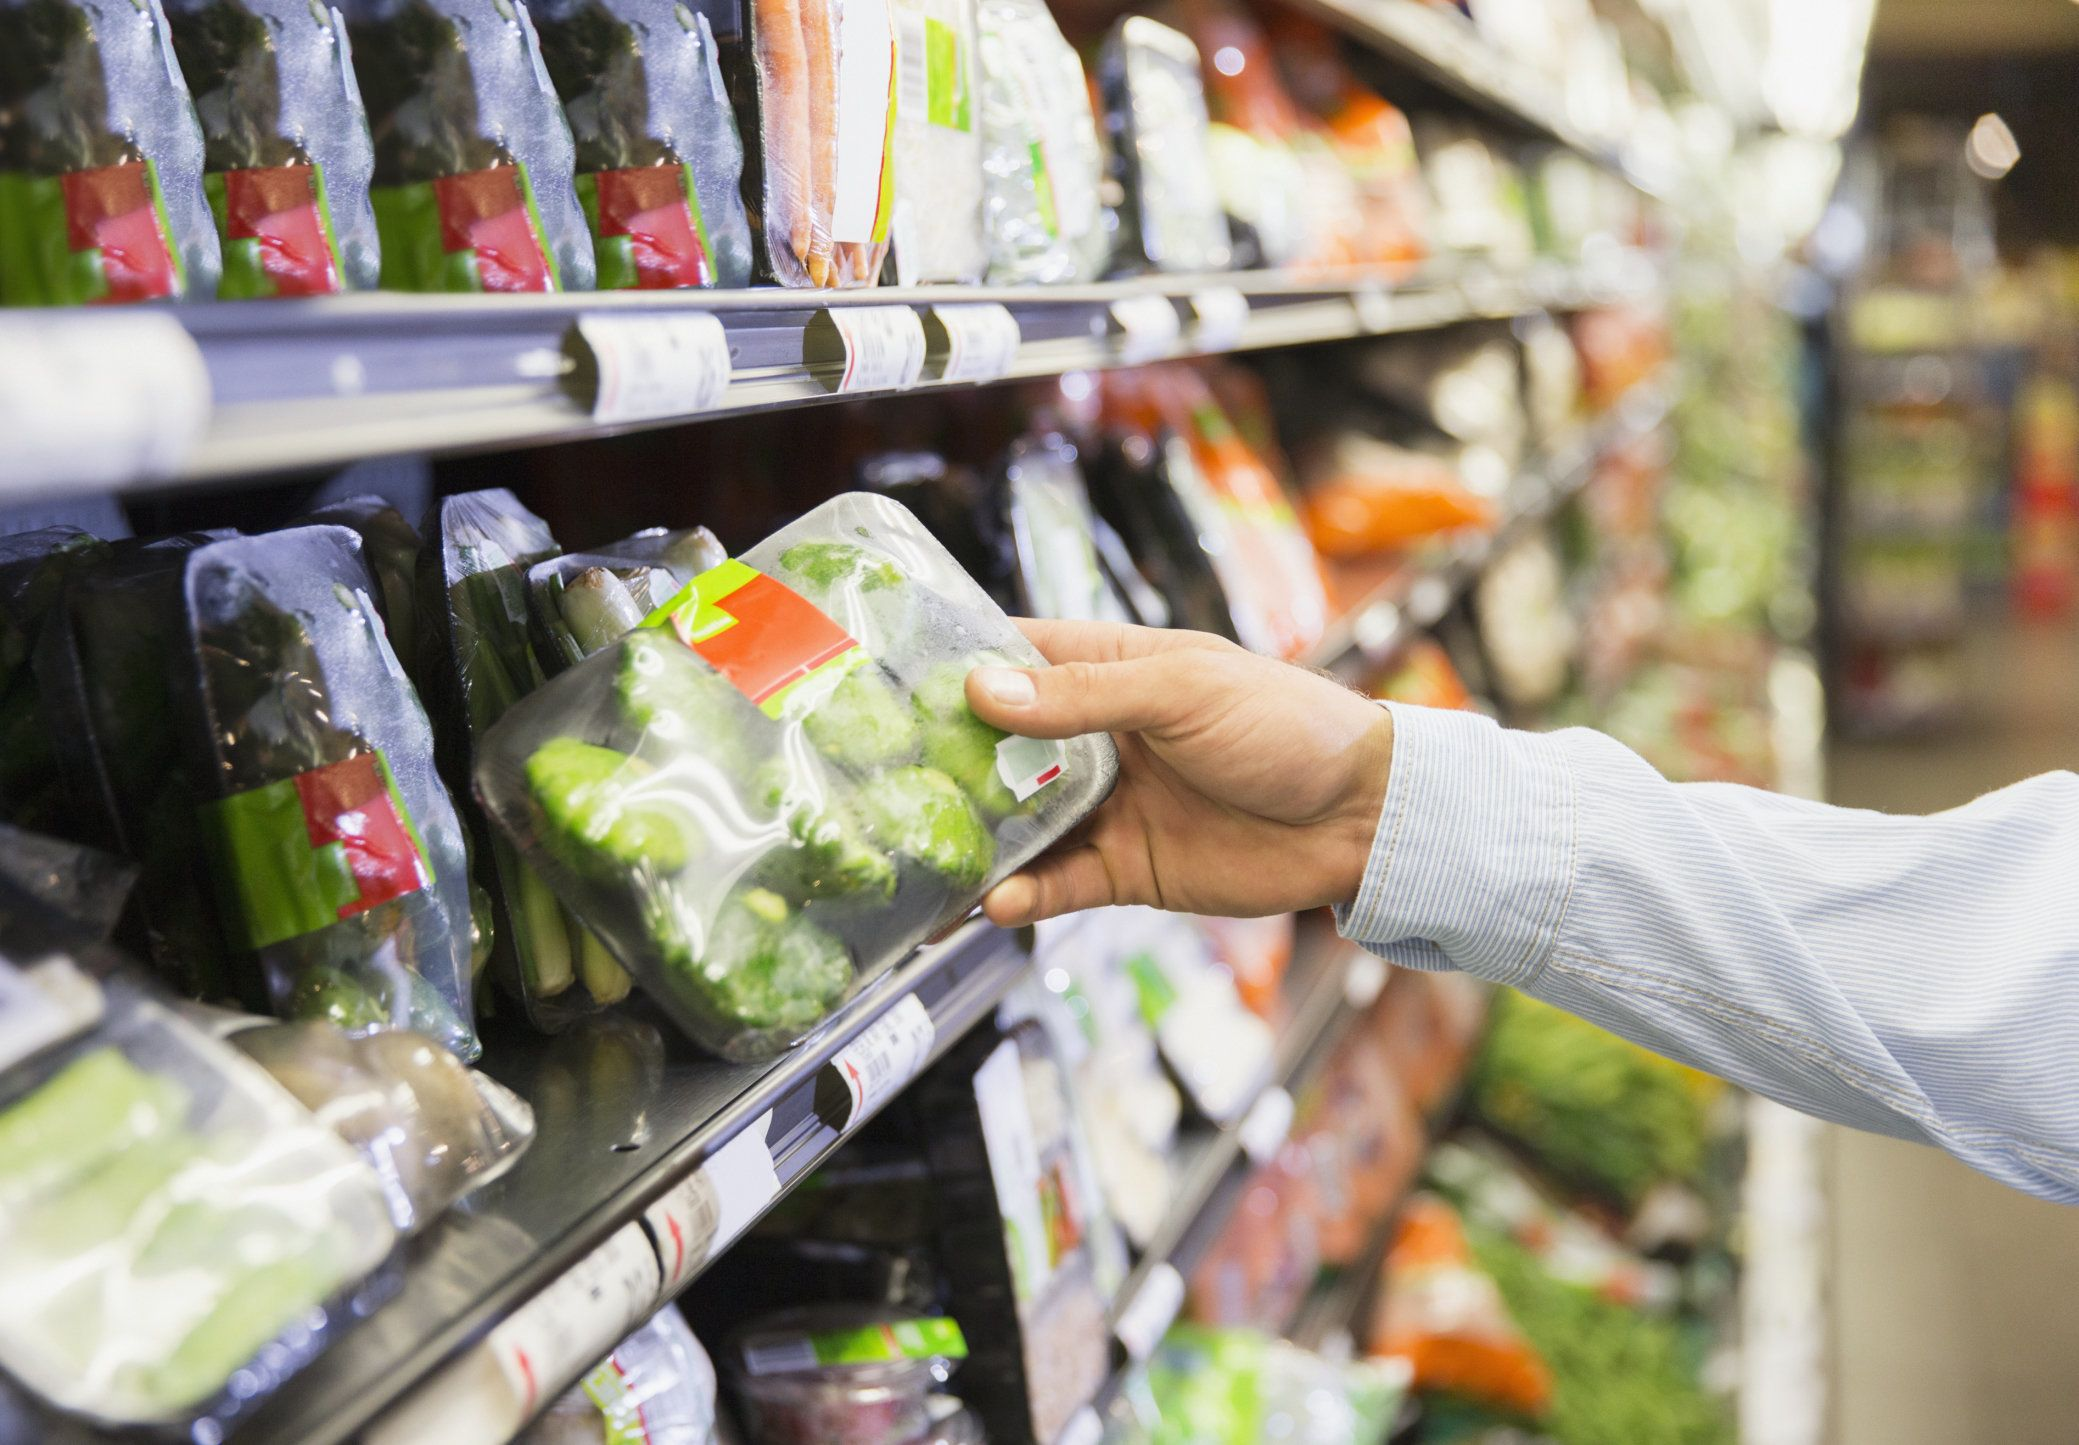 People Care More About How Recyclable Their Food Packaging Is Than How Much Extra It